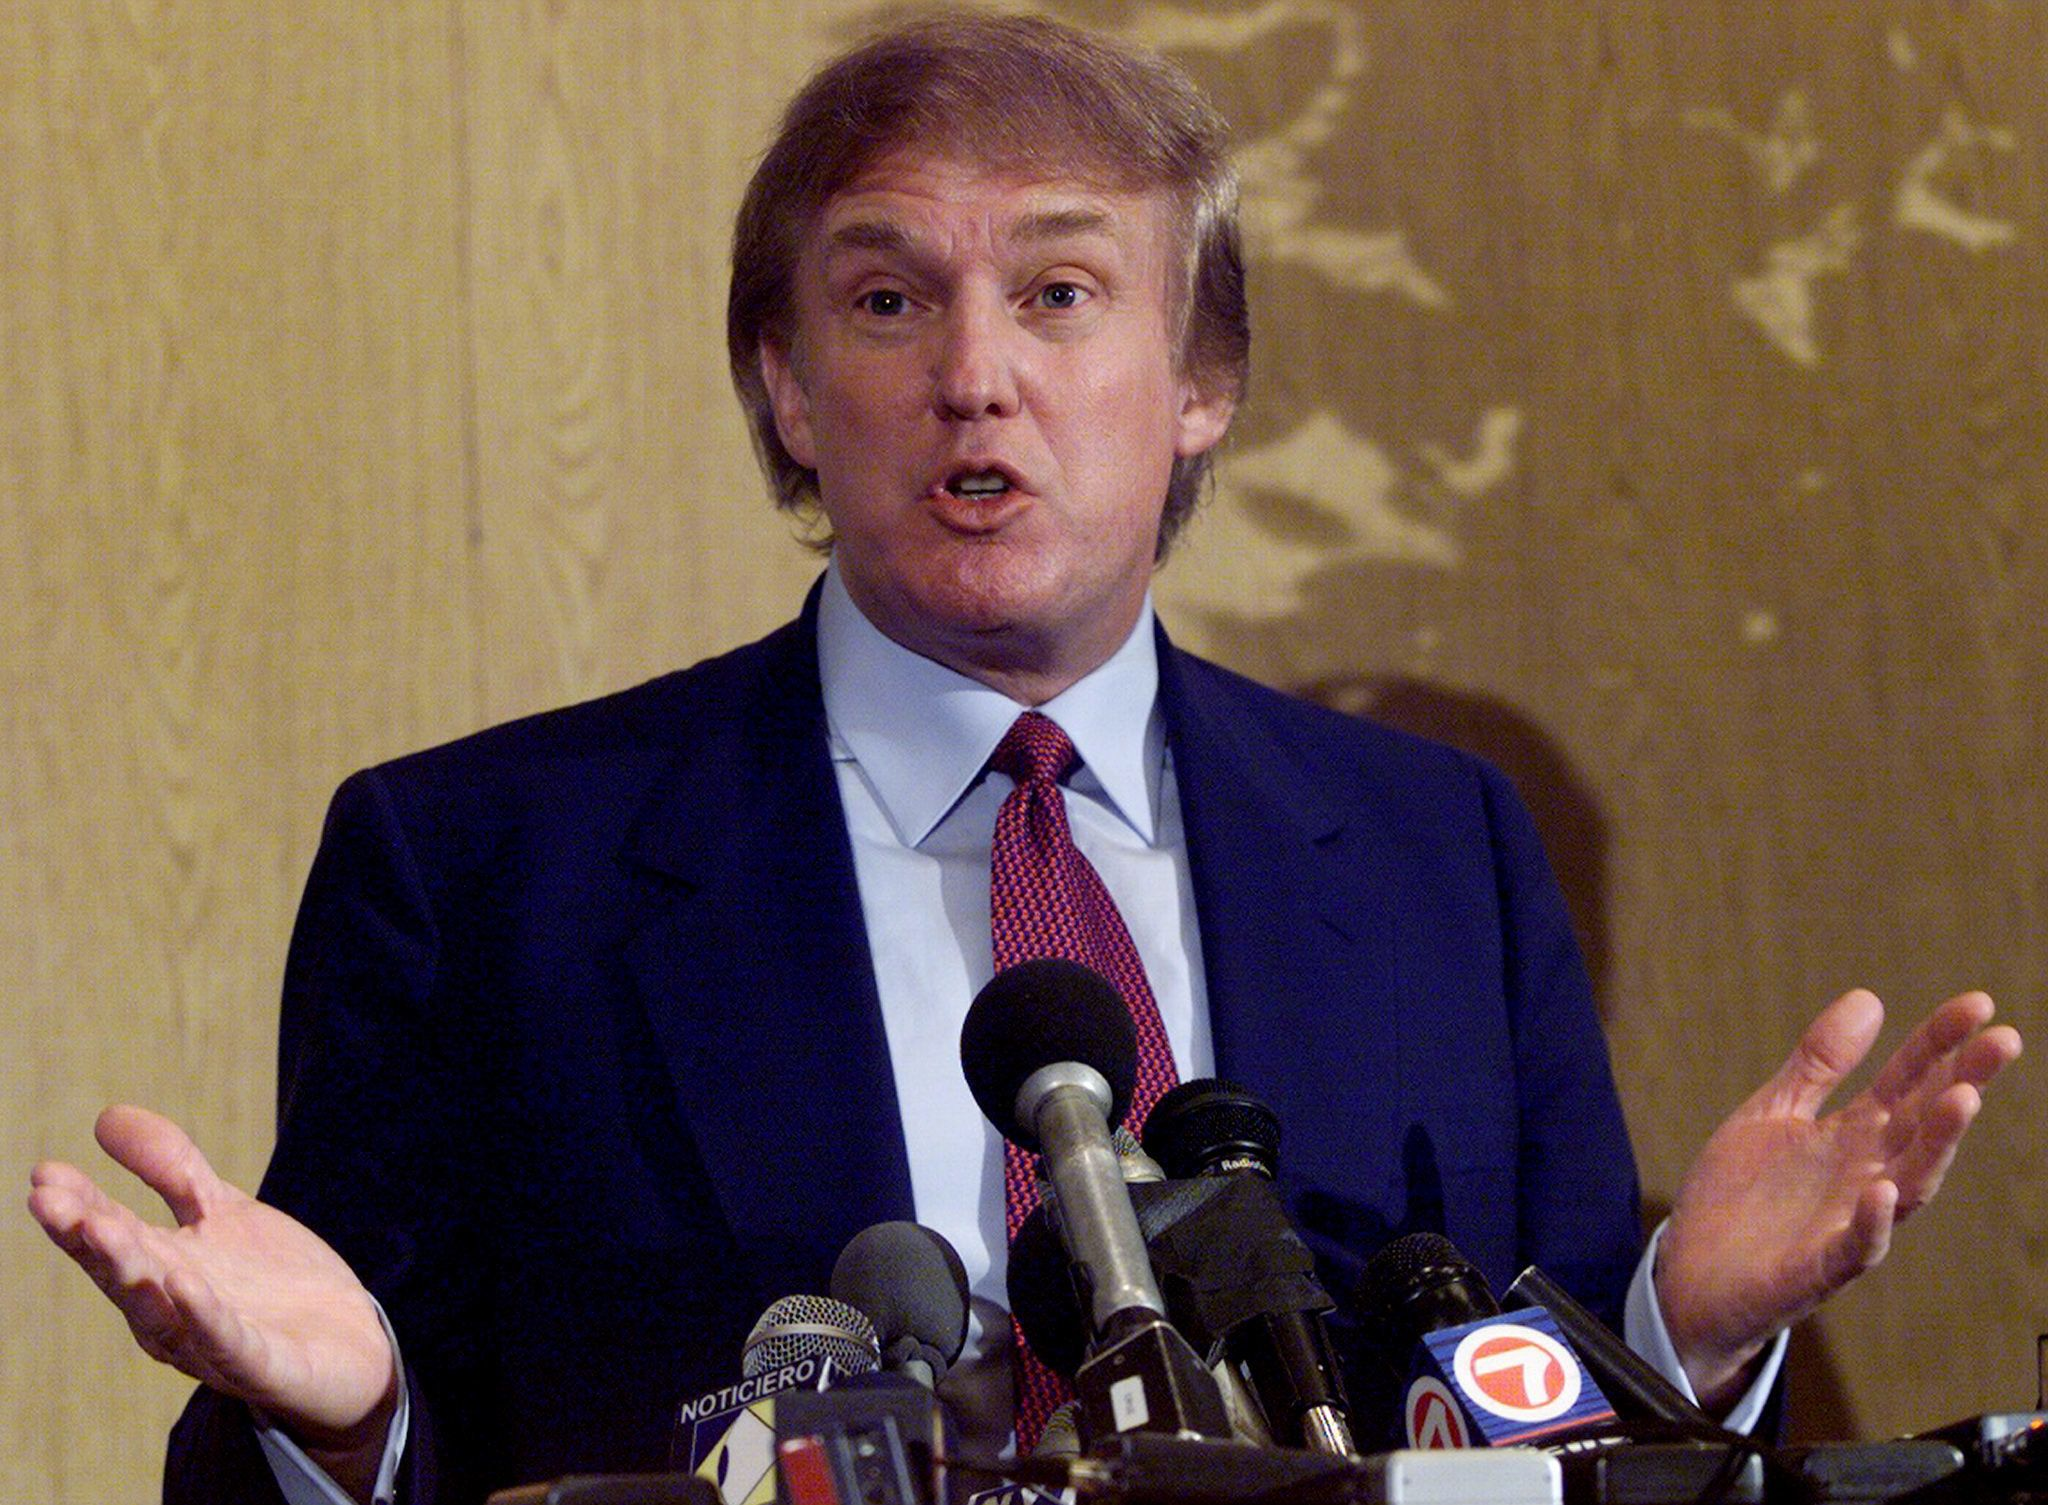 UNITED STATES - NOVEMBER 15:  Donald Trump speaks at news conference in a Miami hotel. Trump was on a trip to explore the possibility of running for the presidency as Reform Party candidate.  (Photo by Harry Hamburg/NY Daily News Archive via Getty Images)